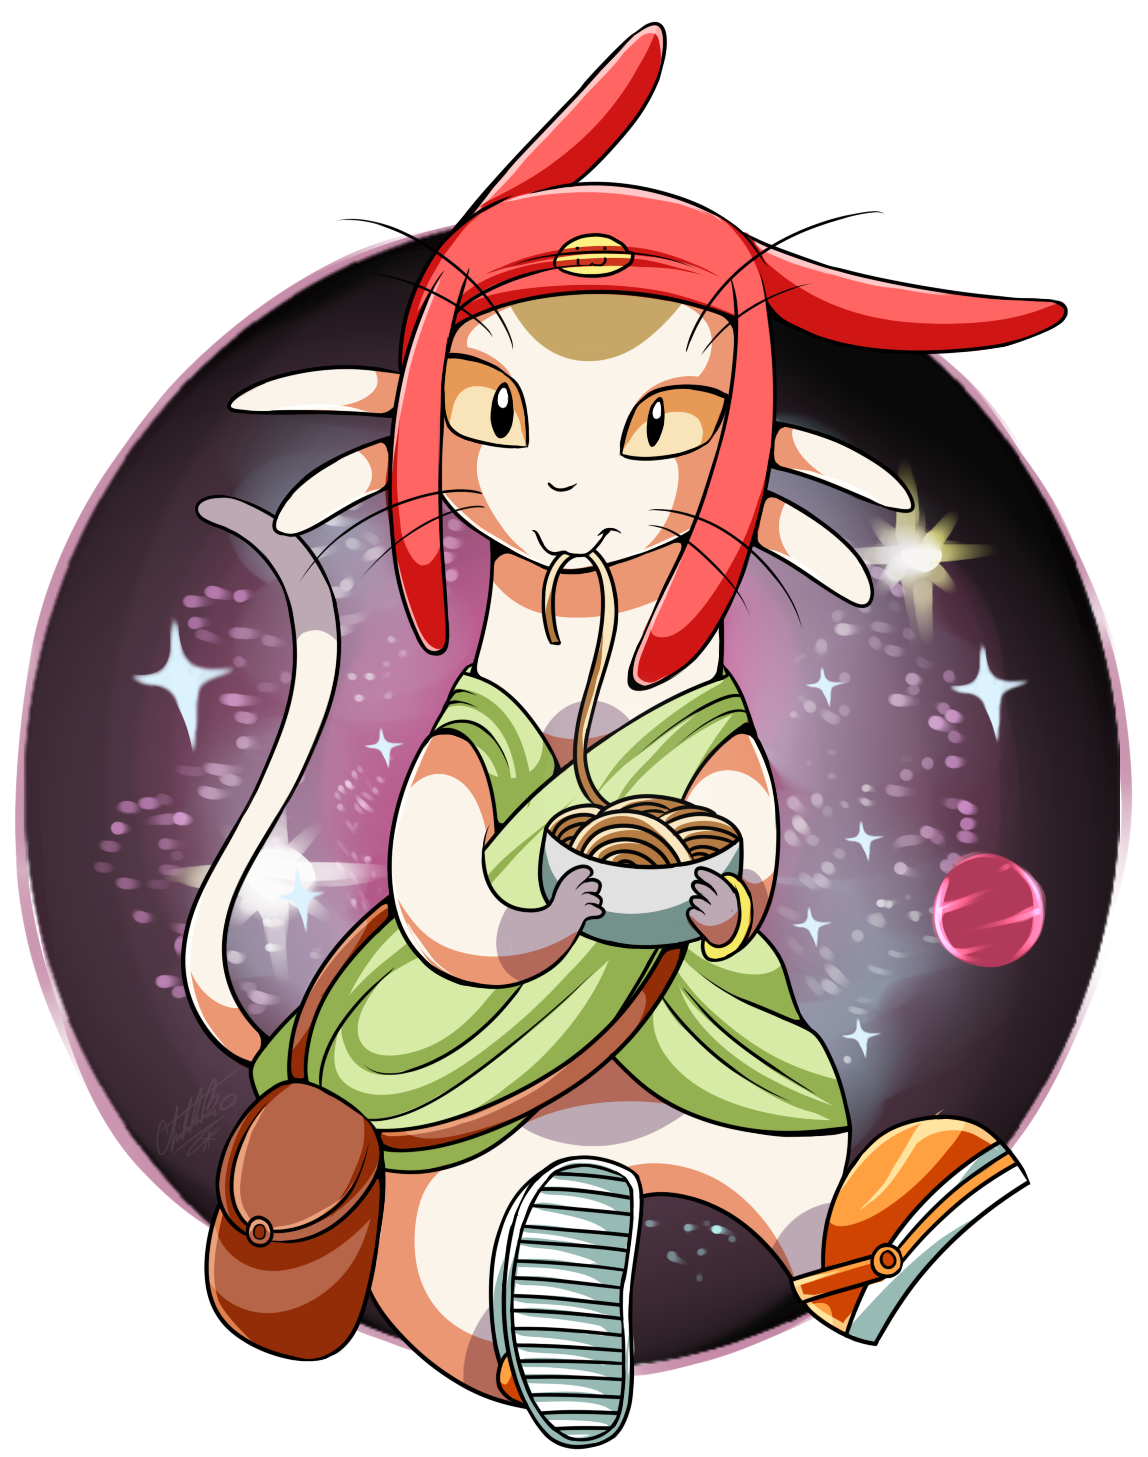 Meow space dandy